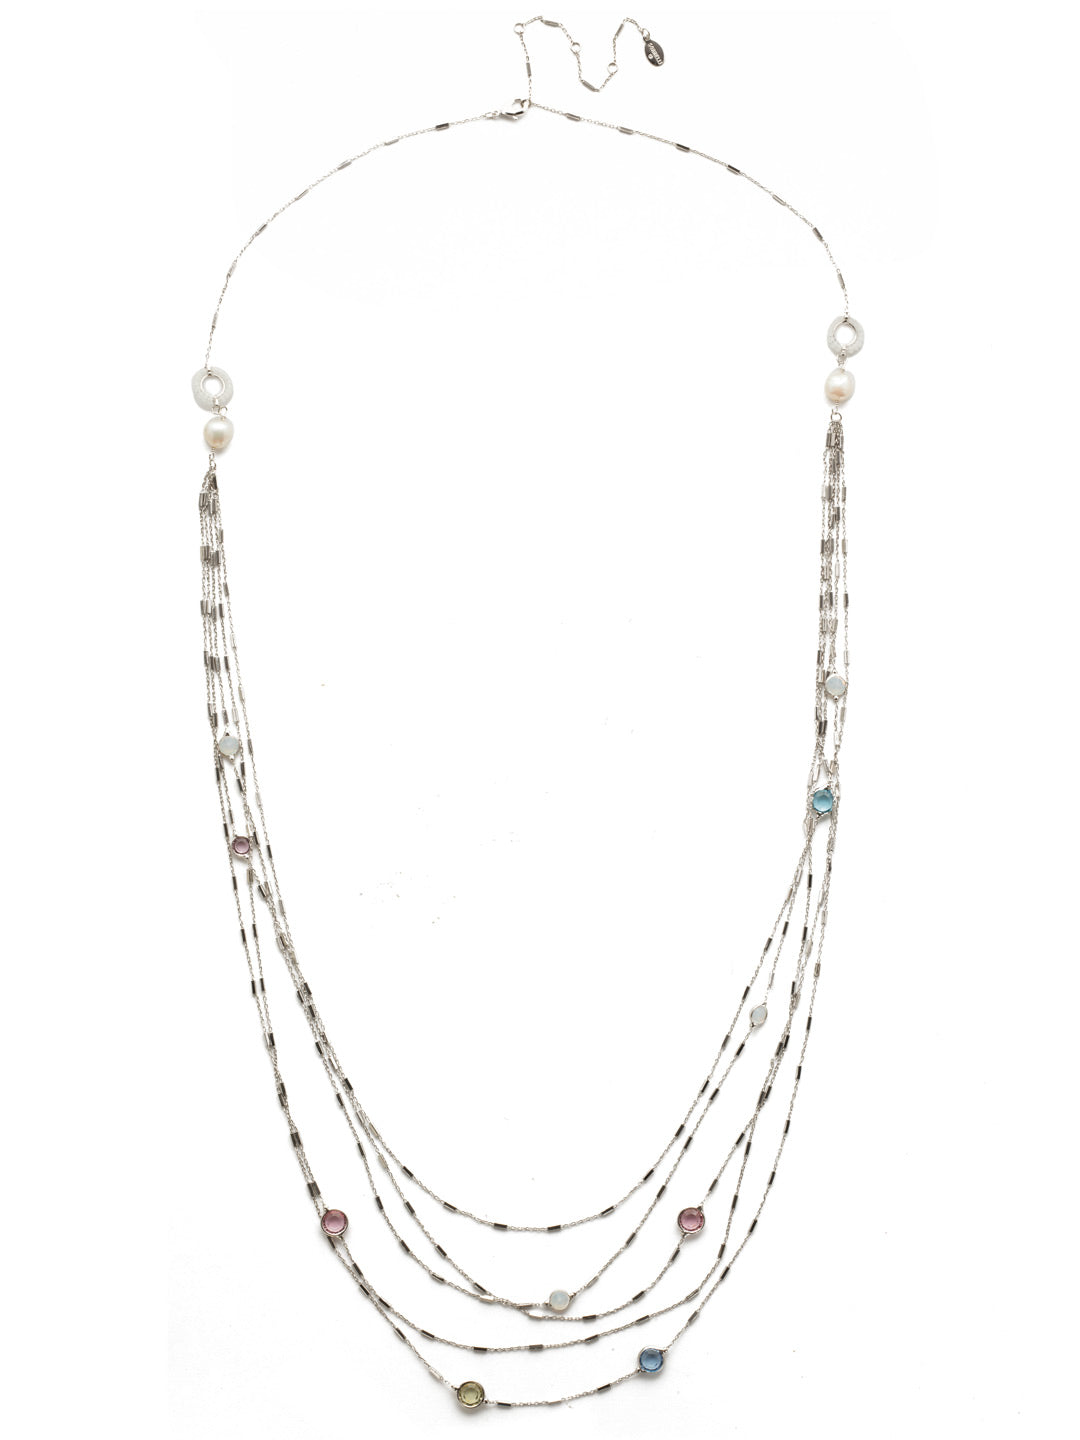 Luminous Layered Necklace - NEK2RHSSU